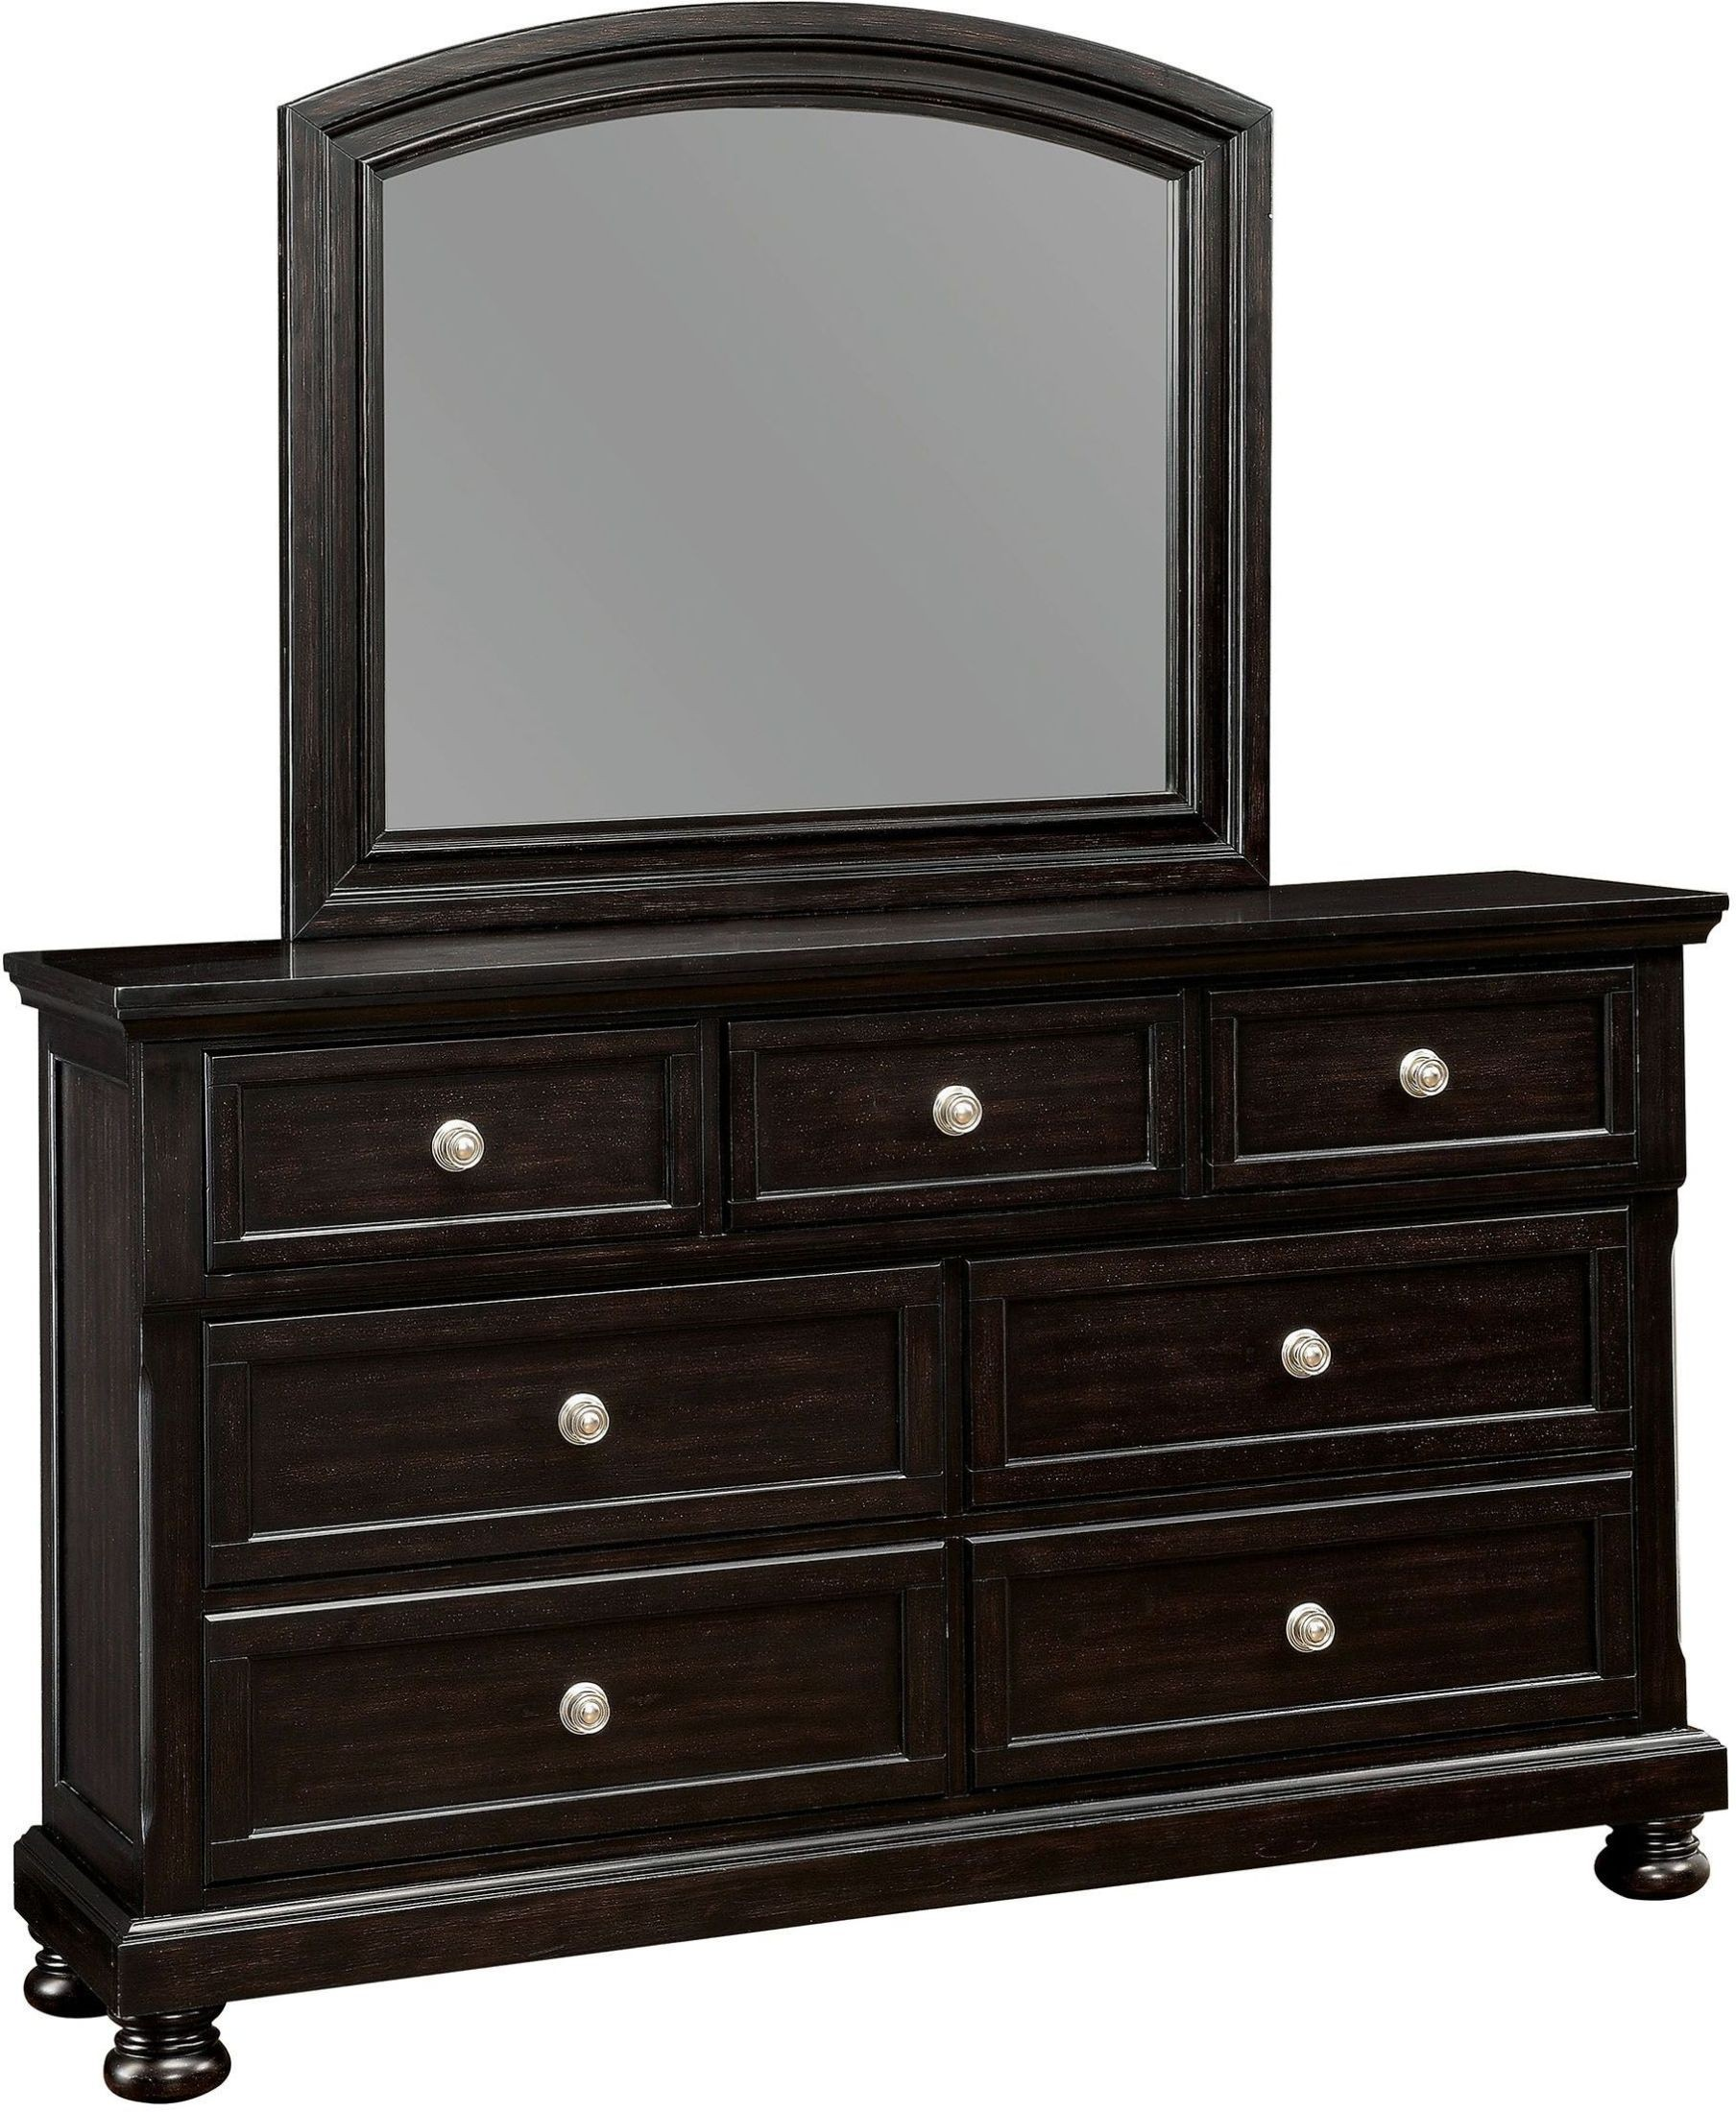 Argusville Espresso Sleigh Storage Bedroom Set CM7381Q Furniture of America